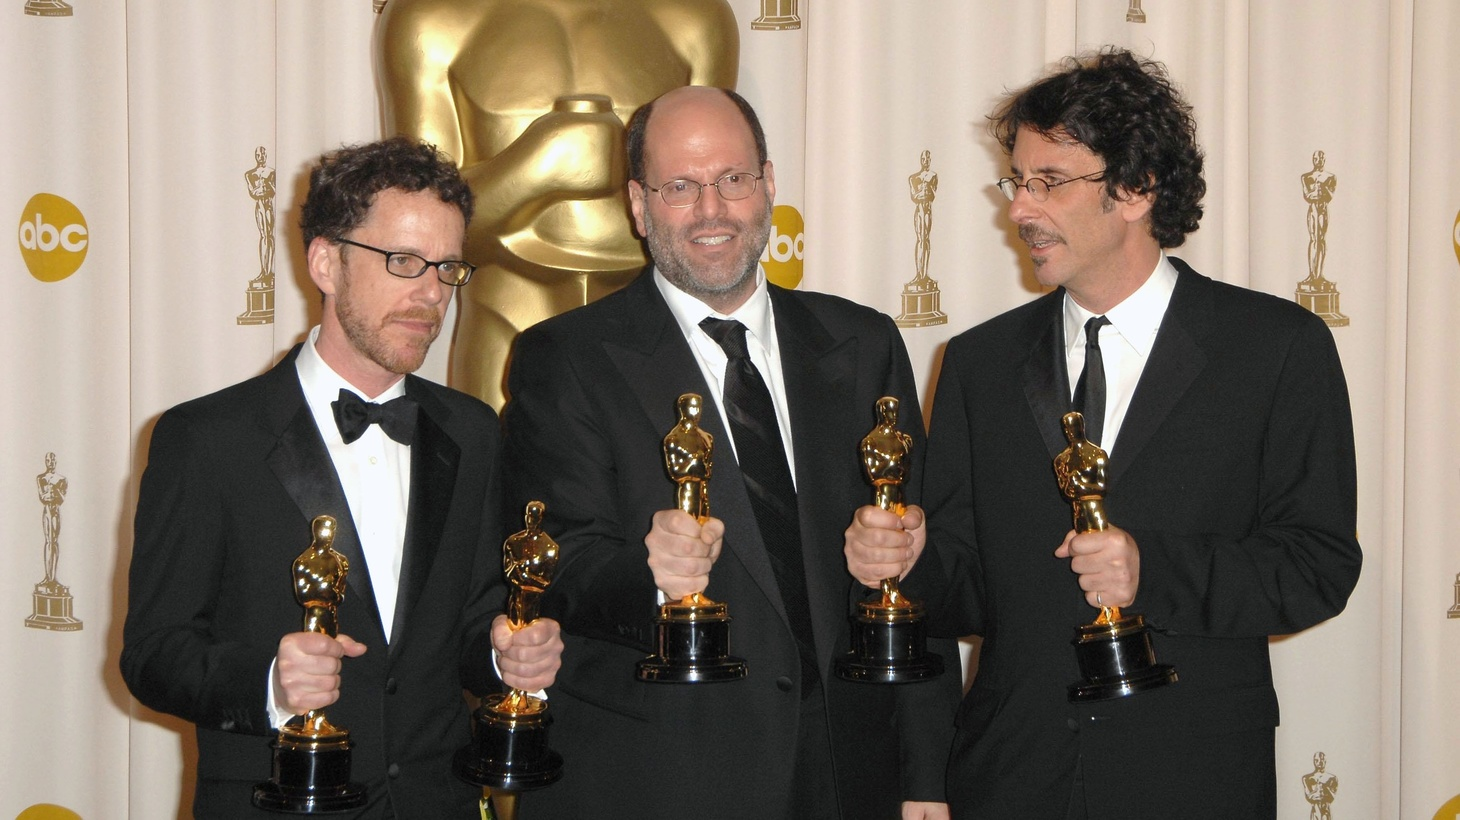 """Producer Scott Rudin (center) with Ethan Coen (left) and Joel Coen (right) with Oscars for """"No Country For Old Men"""" at the 2008 Academy Awards. Rudin has been accused of abusive workplace behavior for decades. Now former assistants are going on the record."""